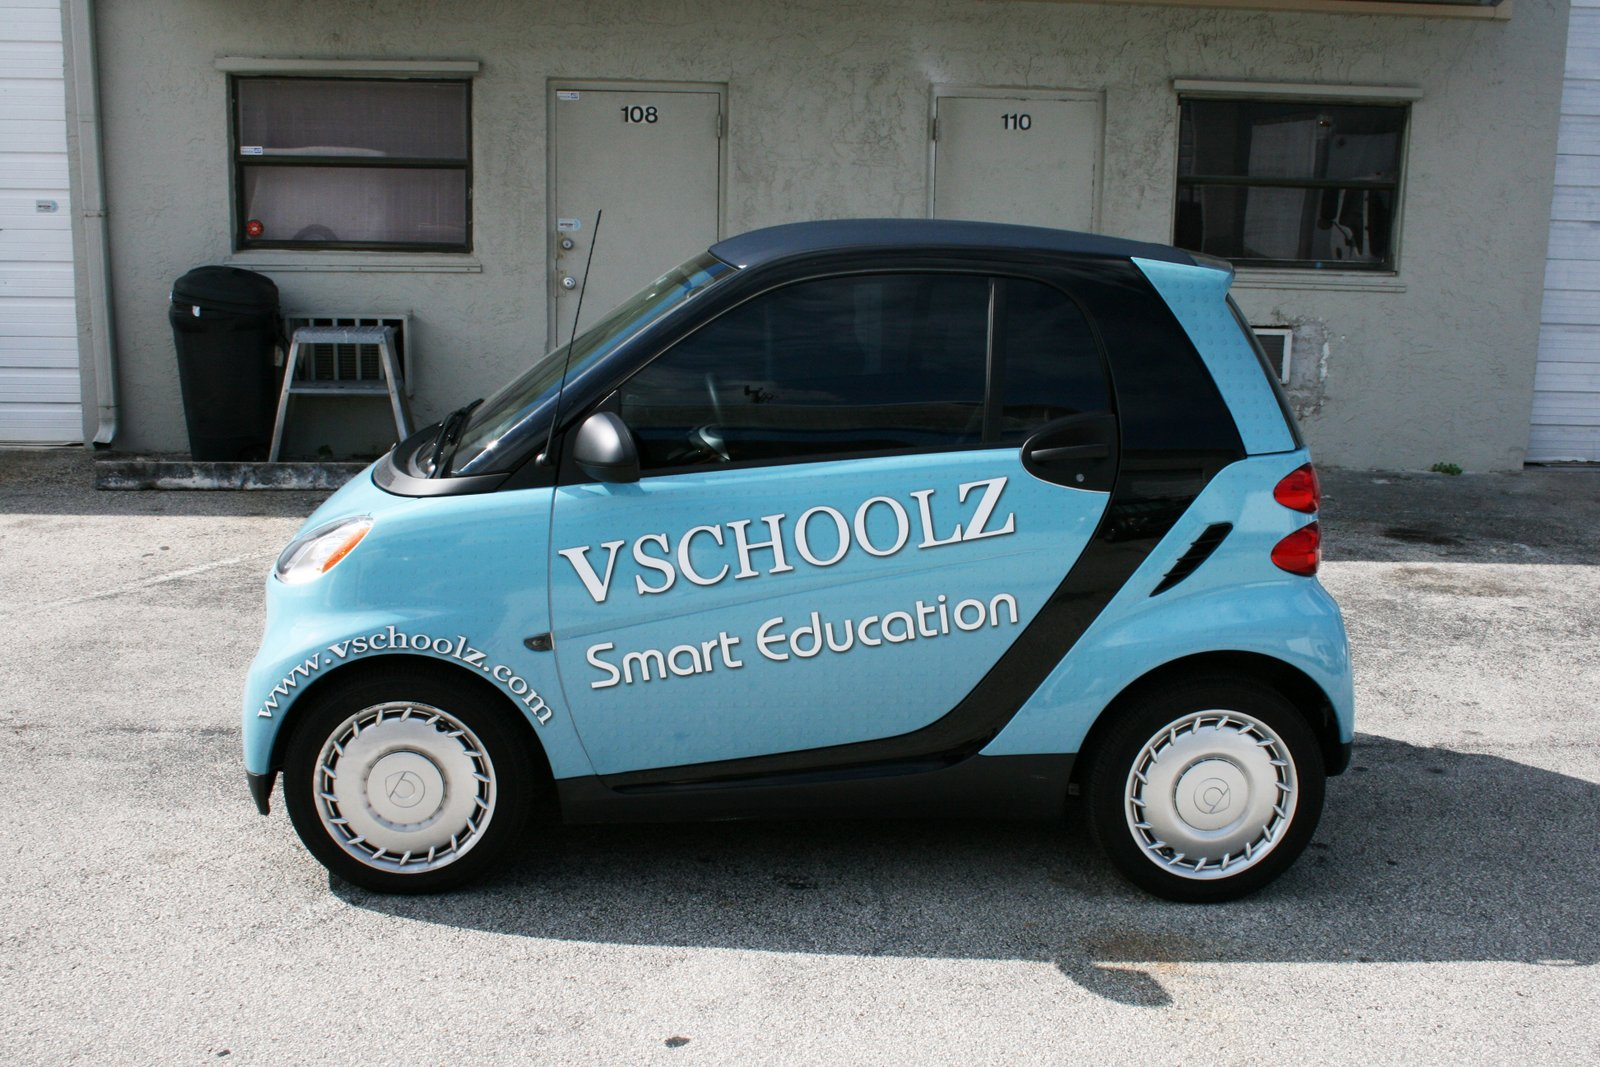 Good Smart Car Wrap Coral Springs FL For Vschoolz | 3M CERTIFIED Car Wrap  Solutions